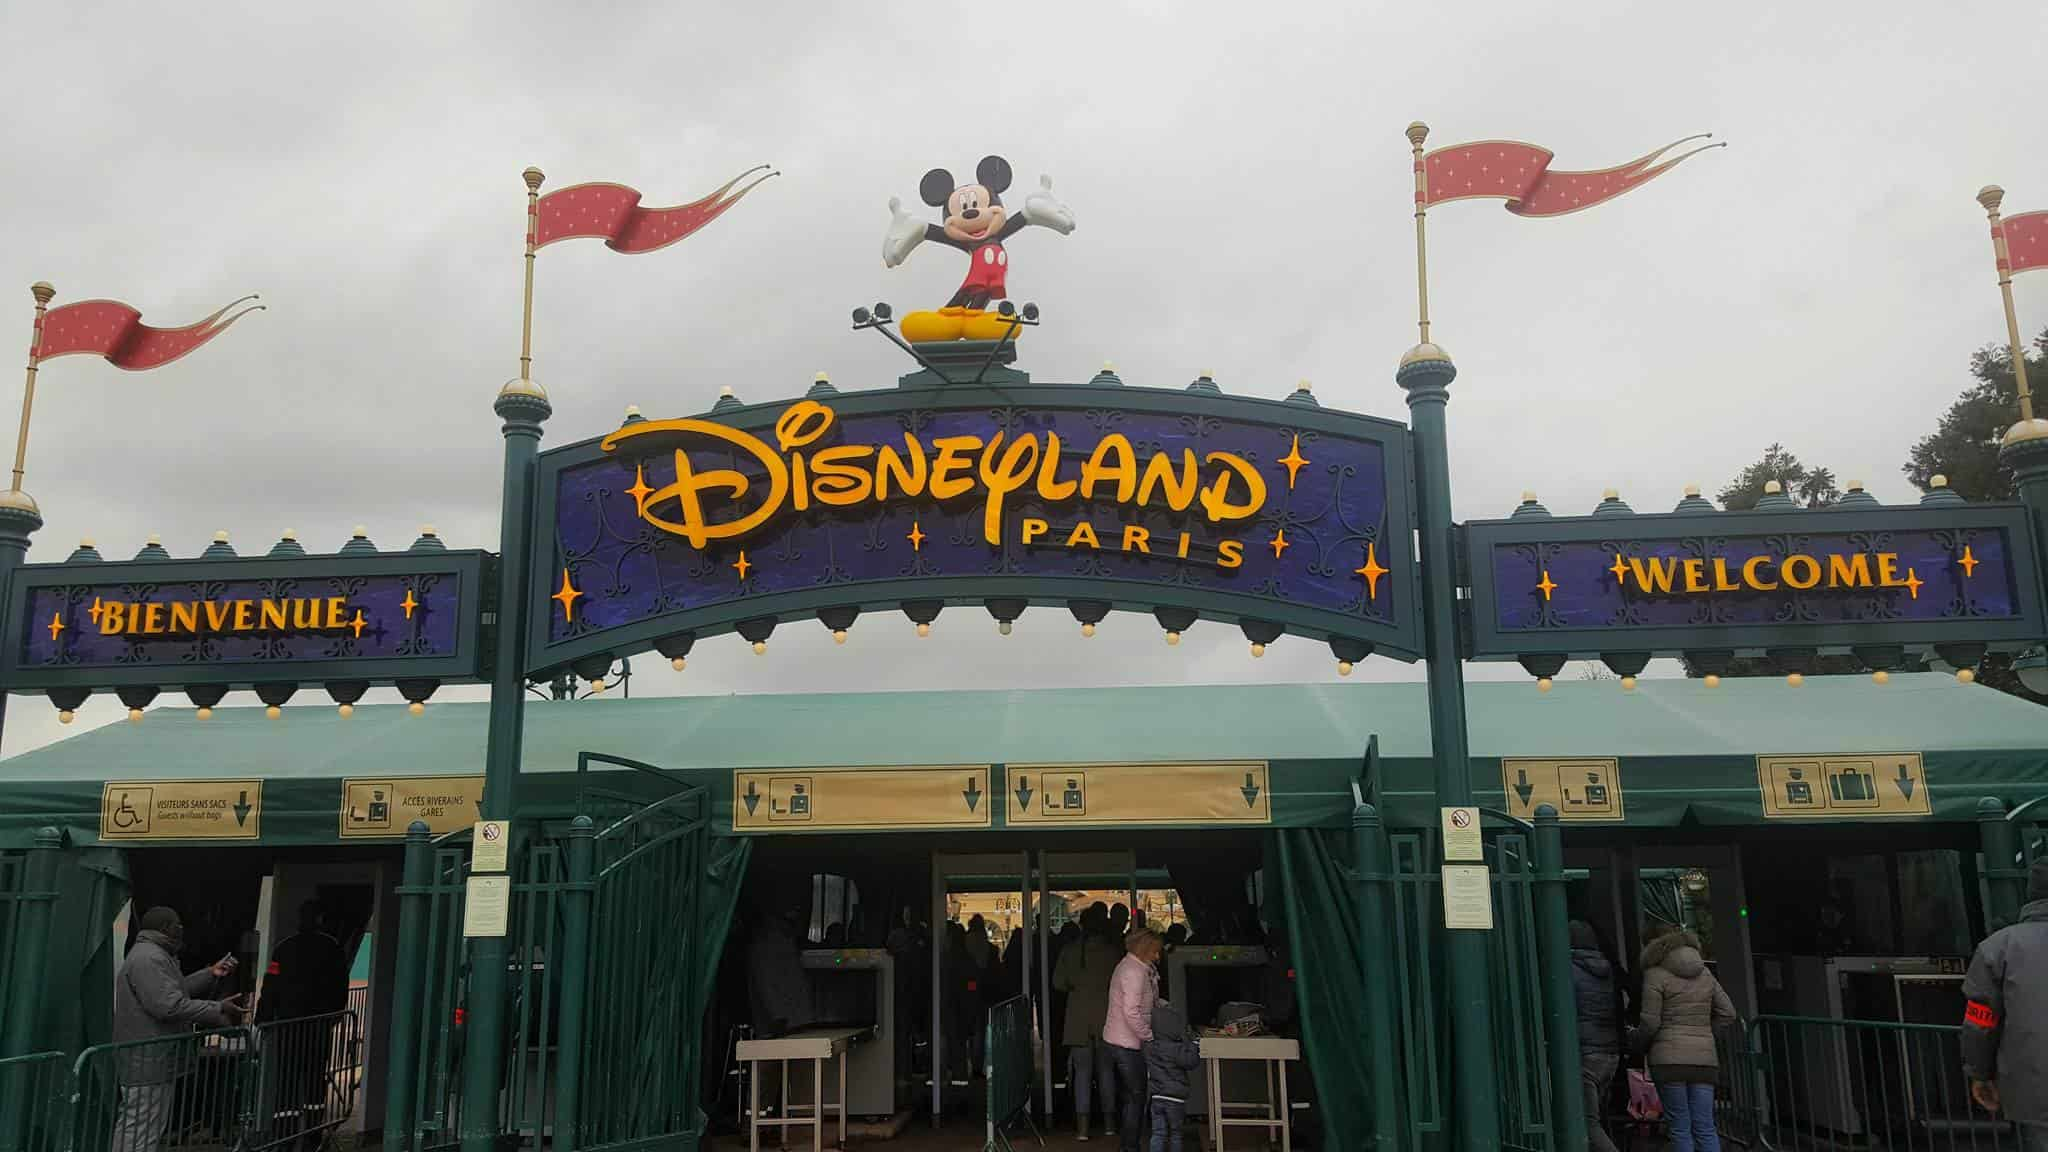 5 Reasons Why Disneyland Paris Is Better Than Walt Disney